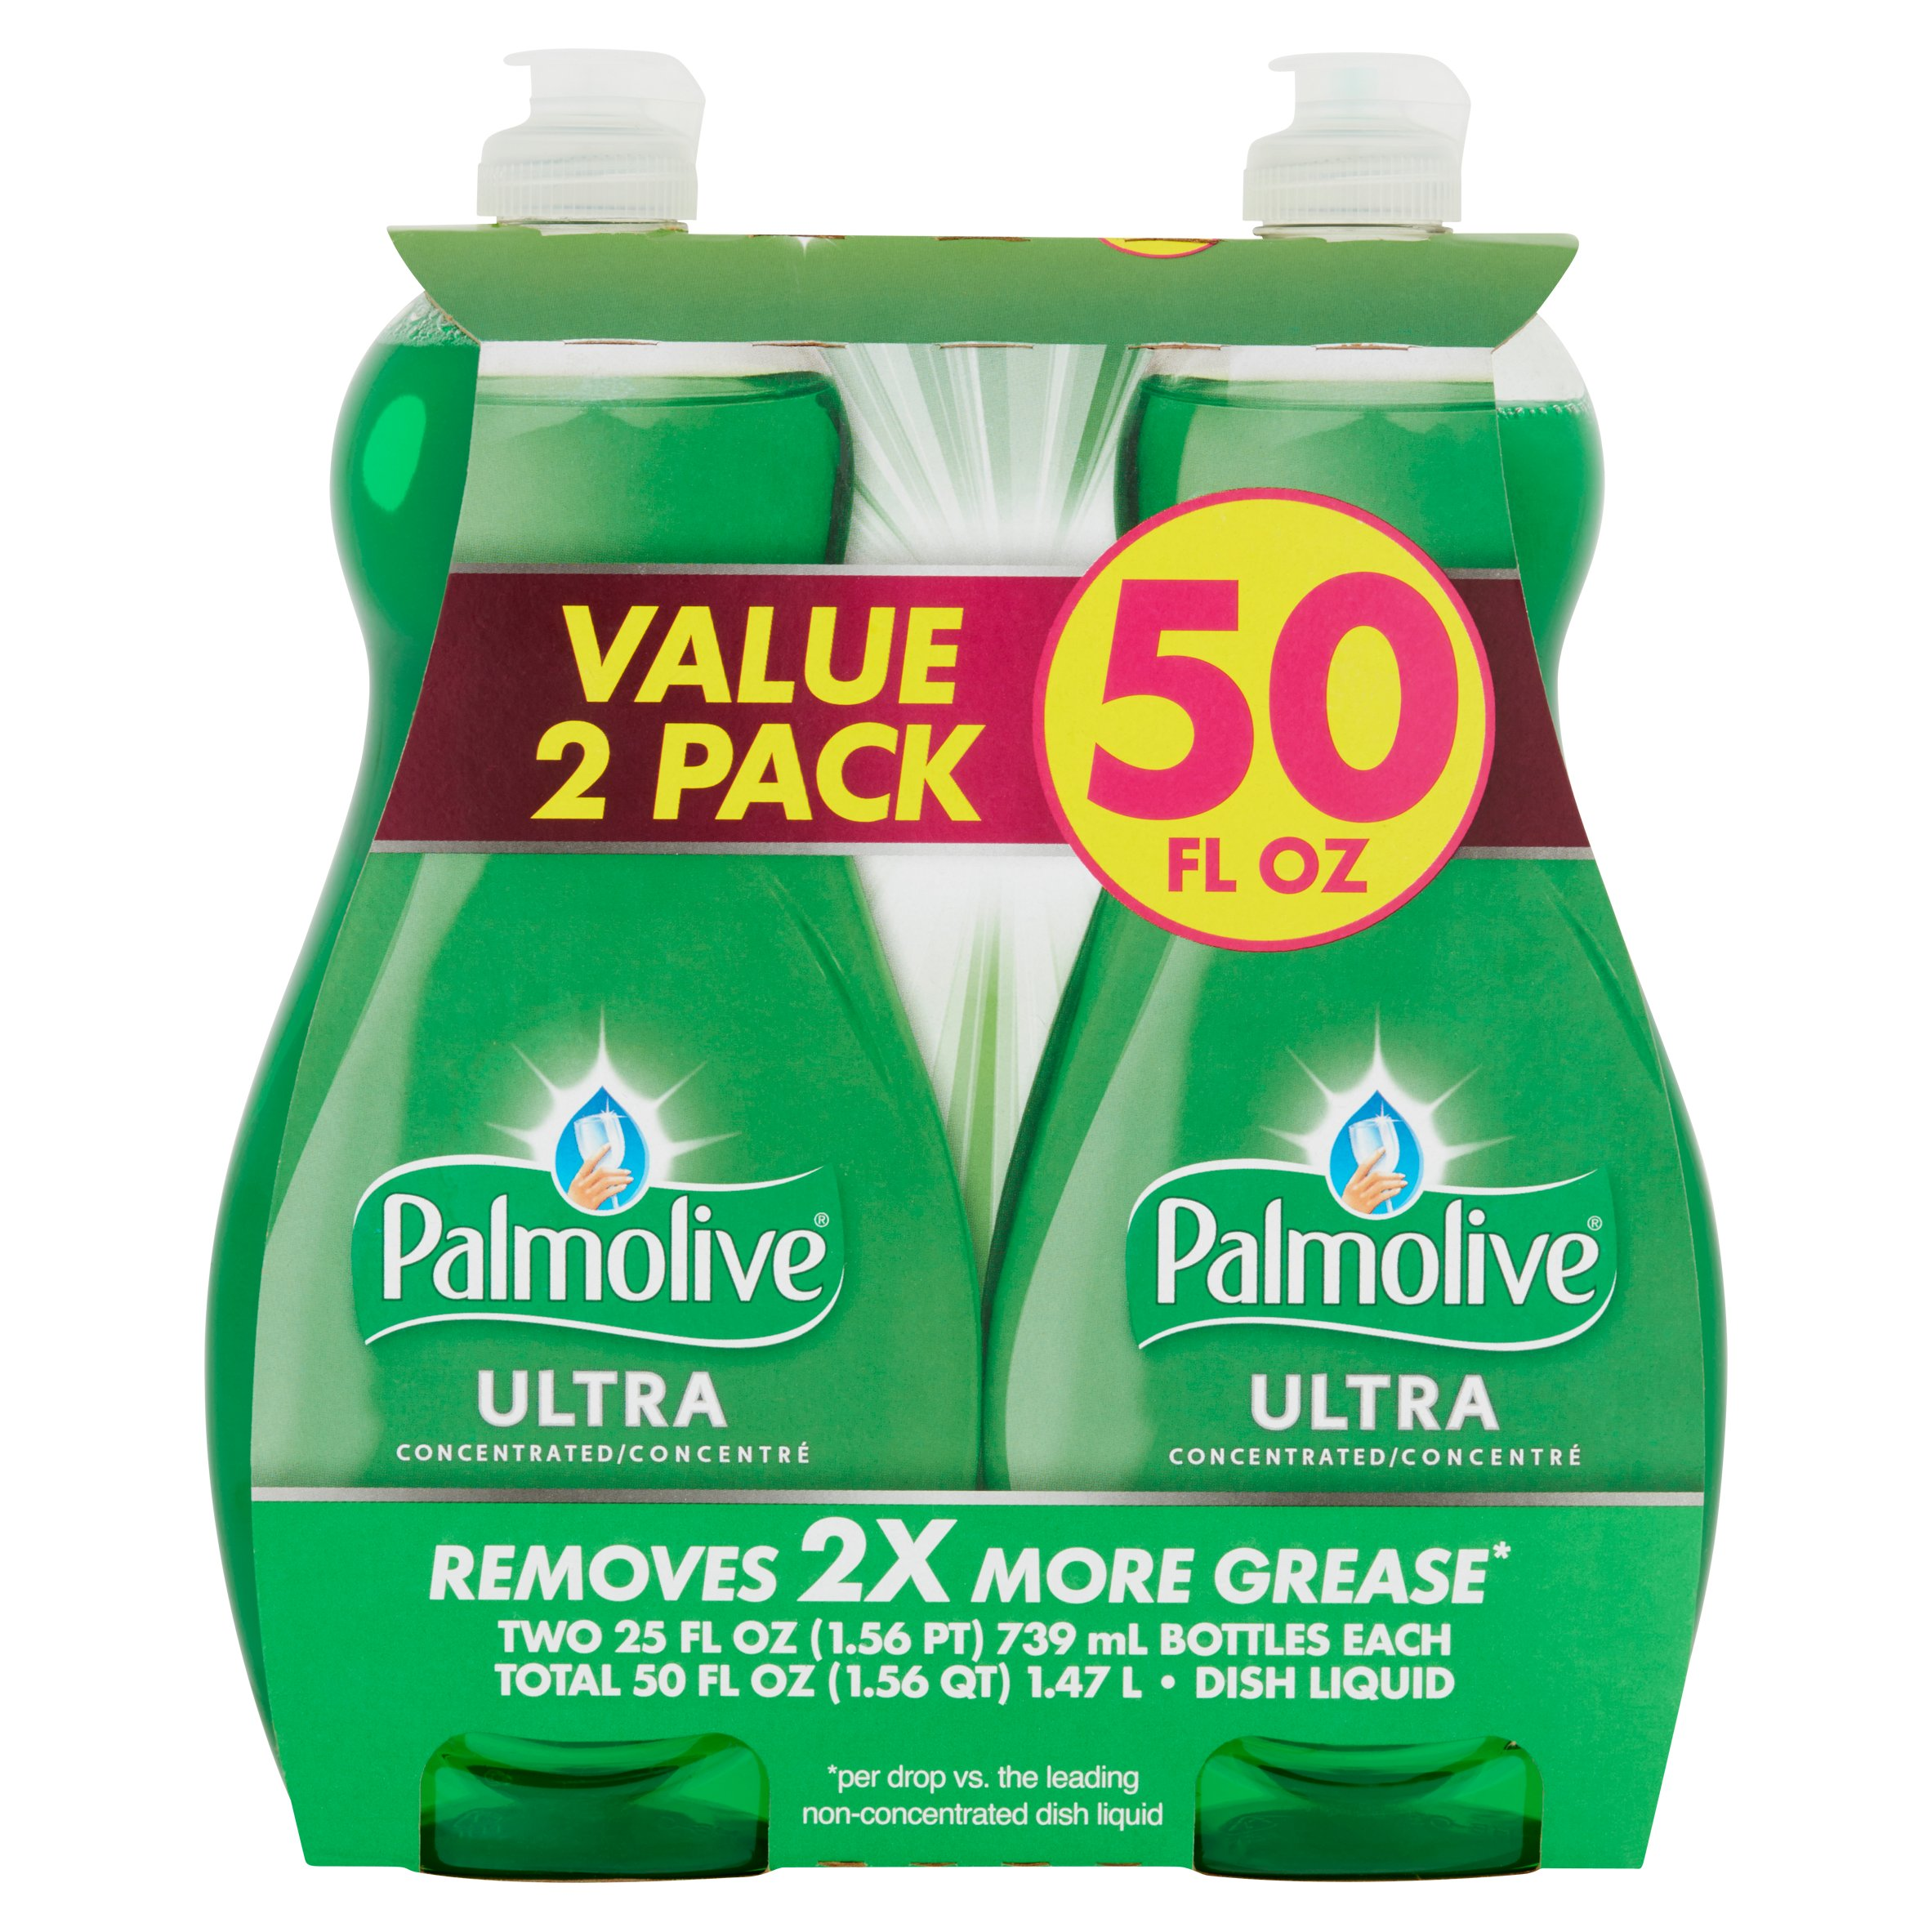 Palmolive Ultra Dish Liquid, Original, 25 fl oz Twin Pack